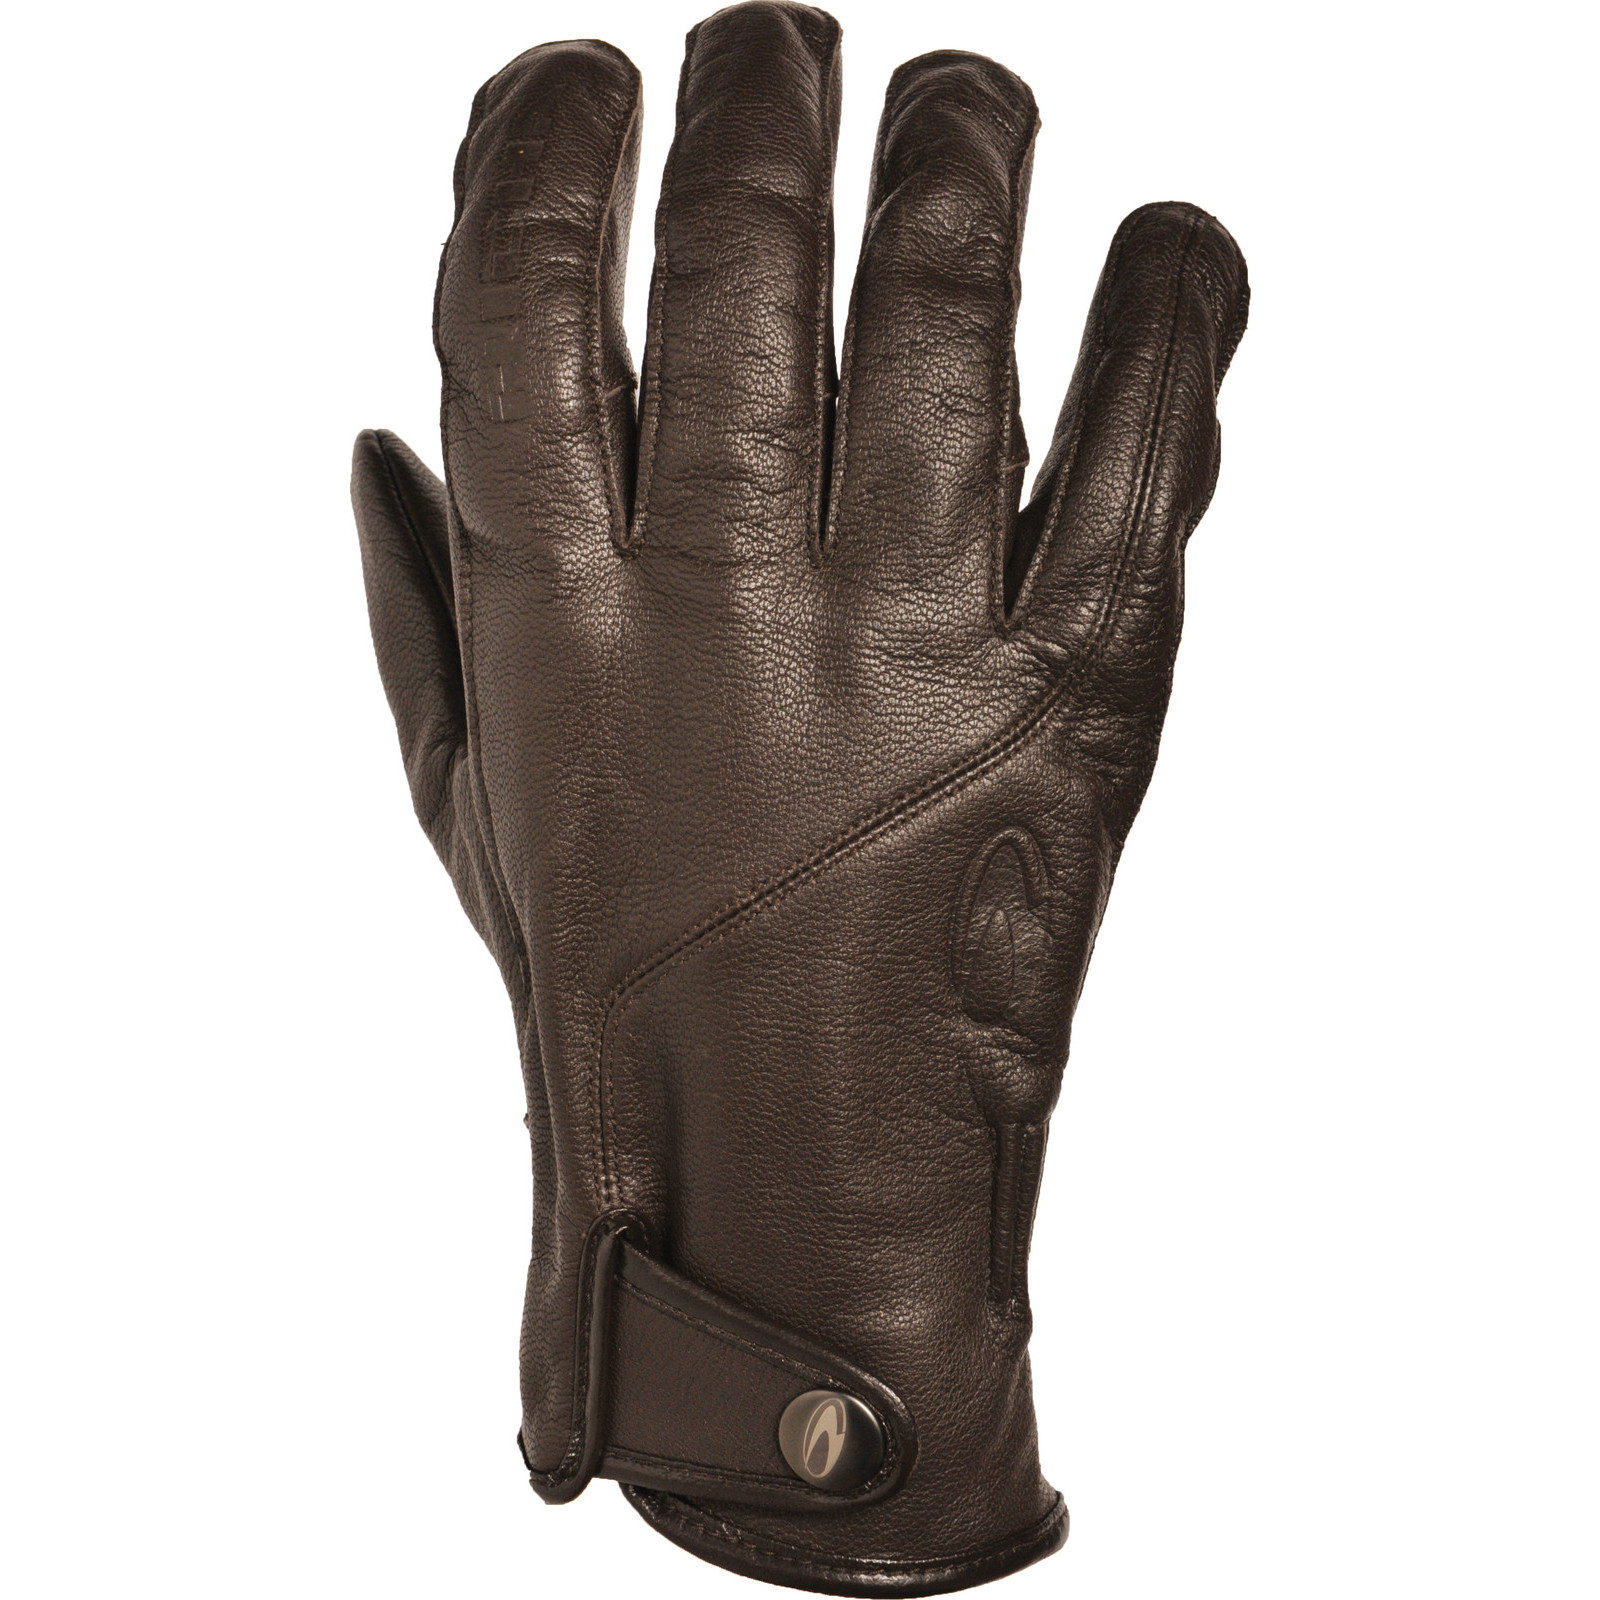 Motorcycle leather gloves india - Mens Leather Gloves Ebay Ebay Richa Scoot Motorcycle Leather Gloves Motorbike Bike Armour Urban